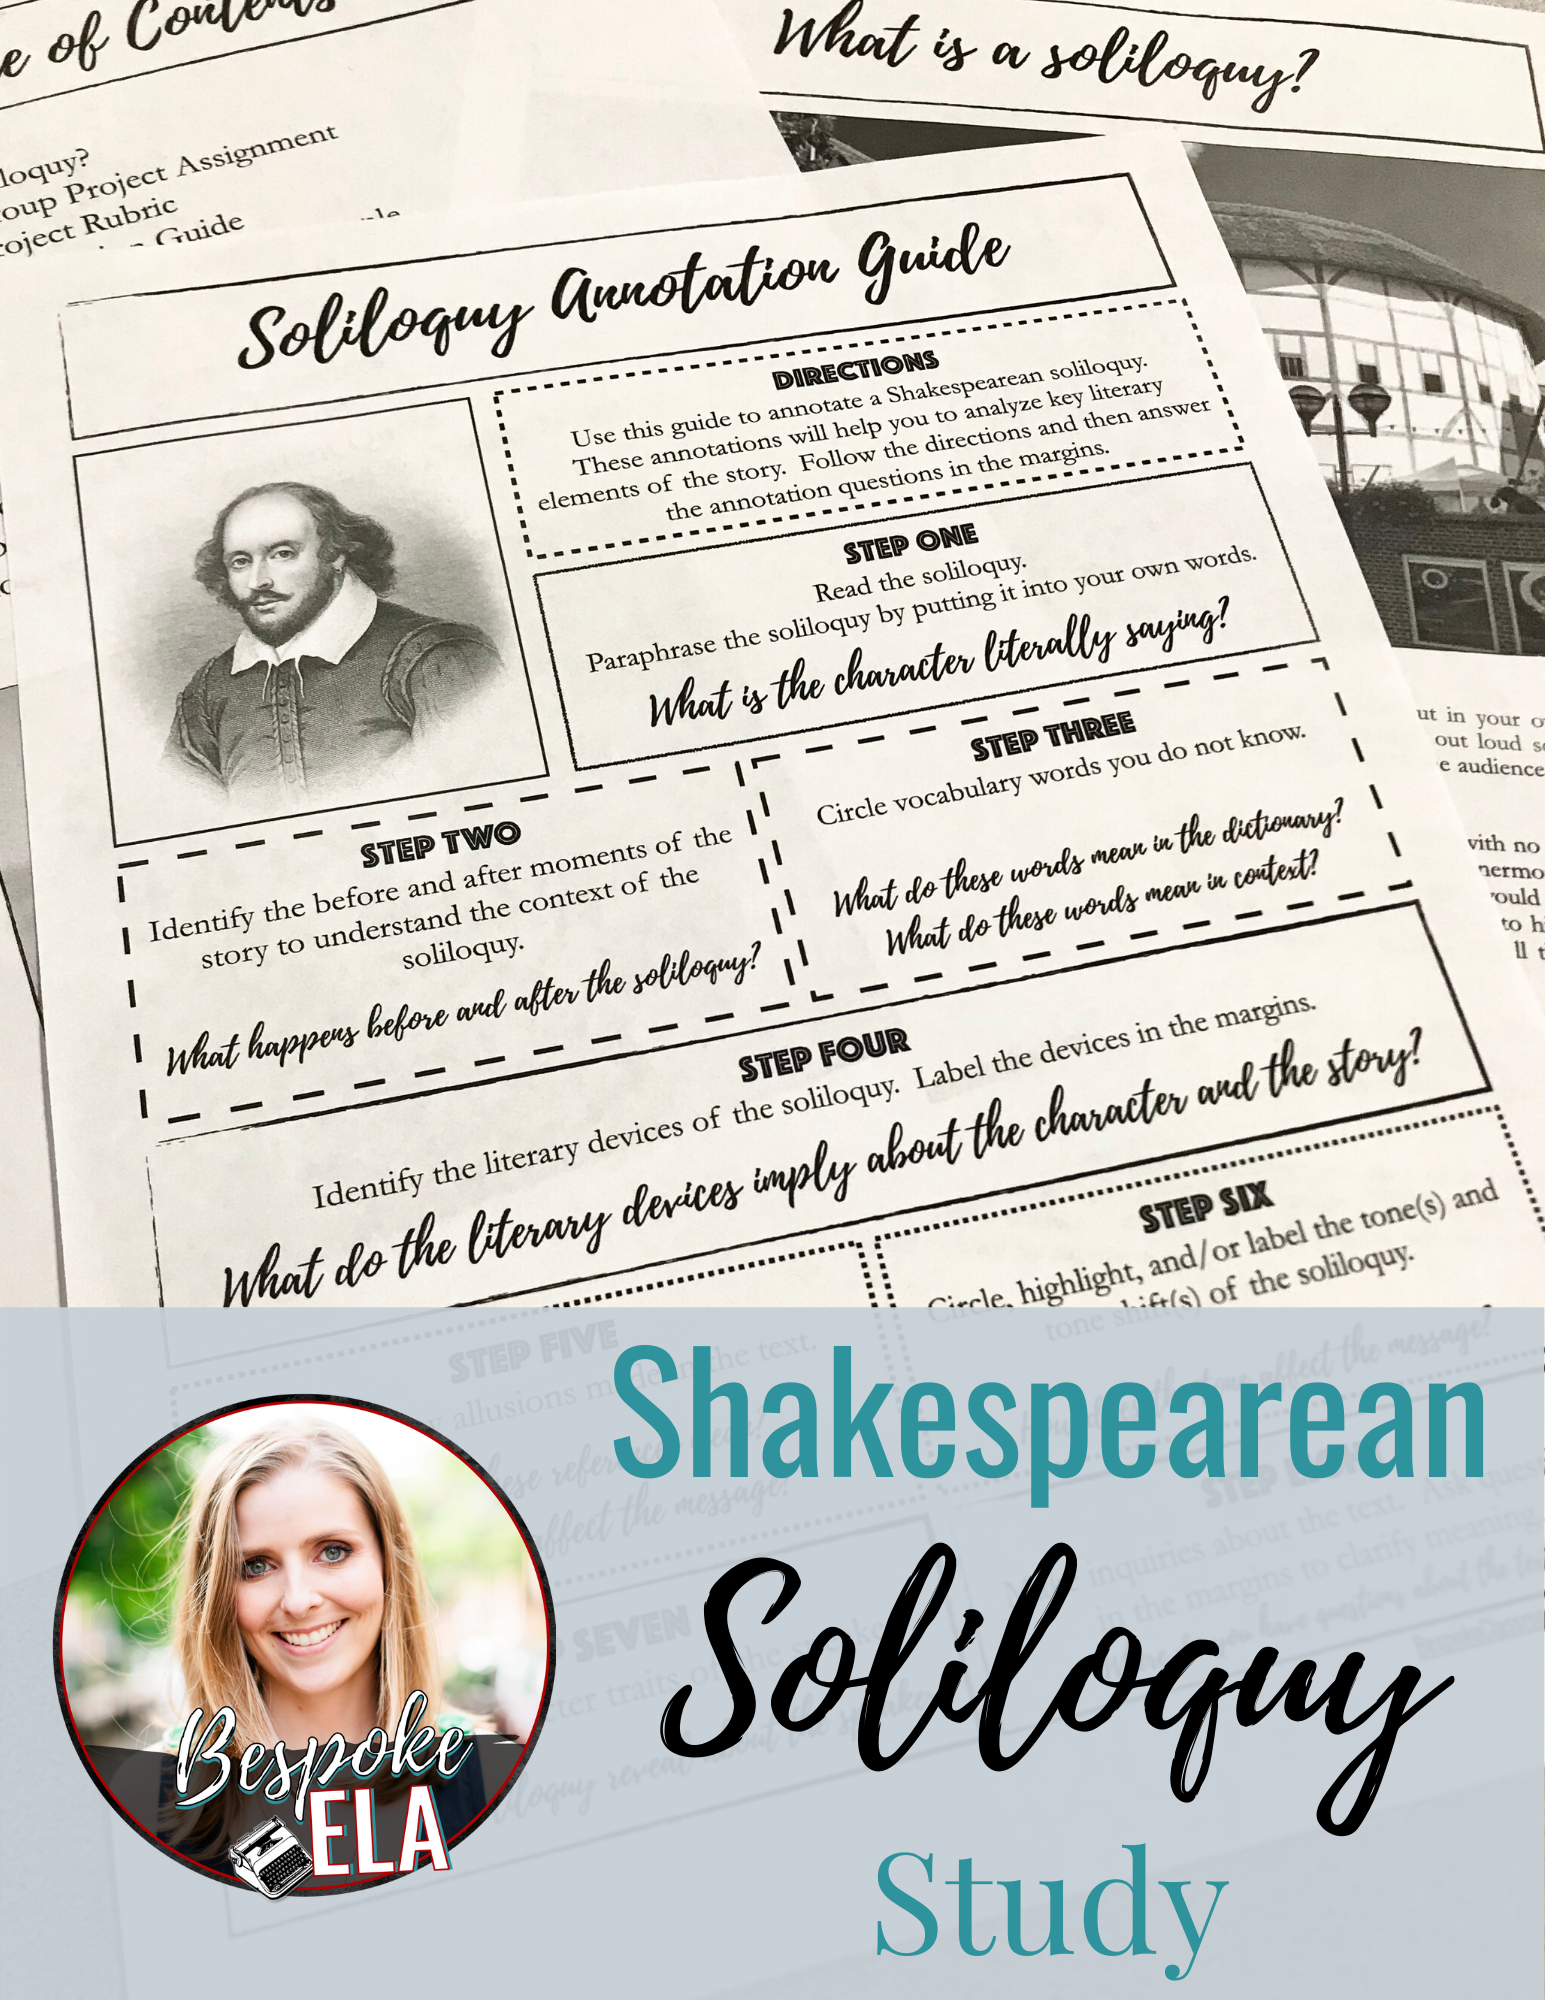 Shakespearean Soliloquy Study For Any Play High School English Lesson Close Reading Shakespeare Plans How To Paraphrase